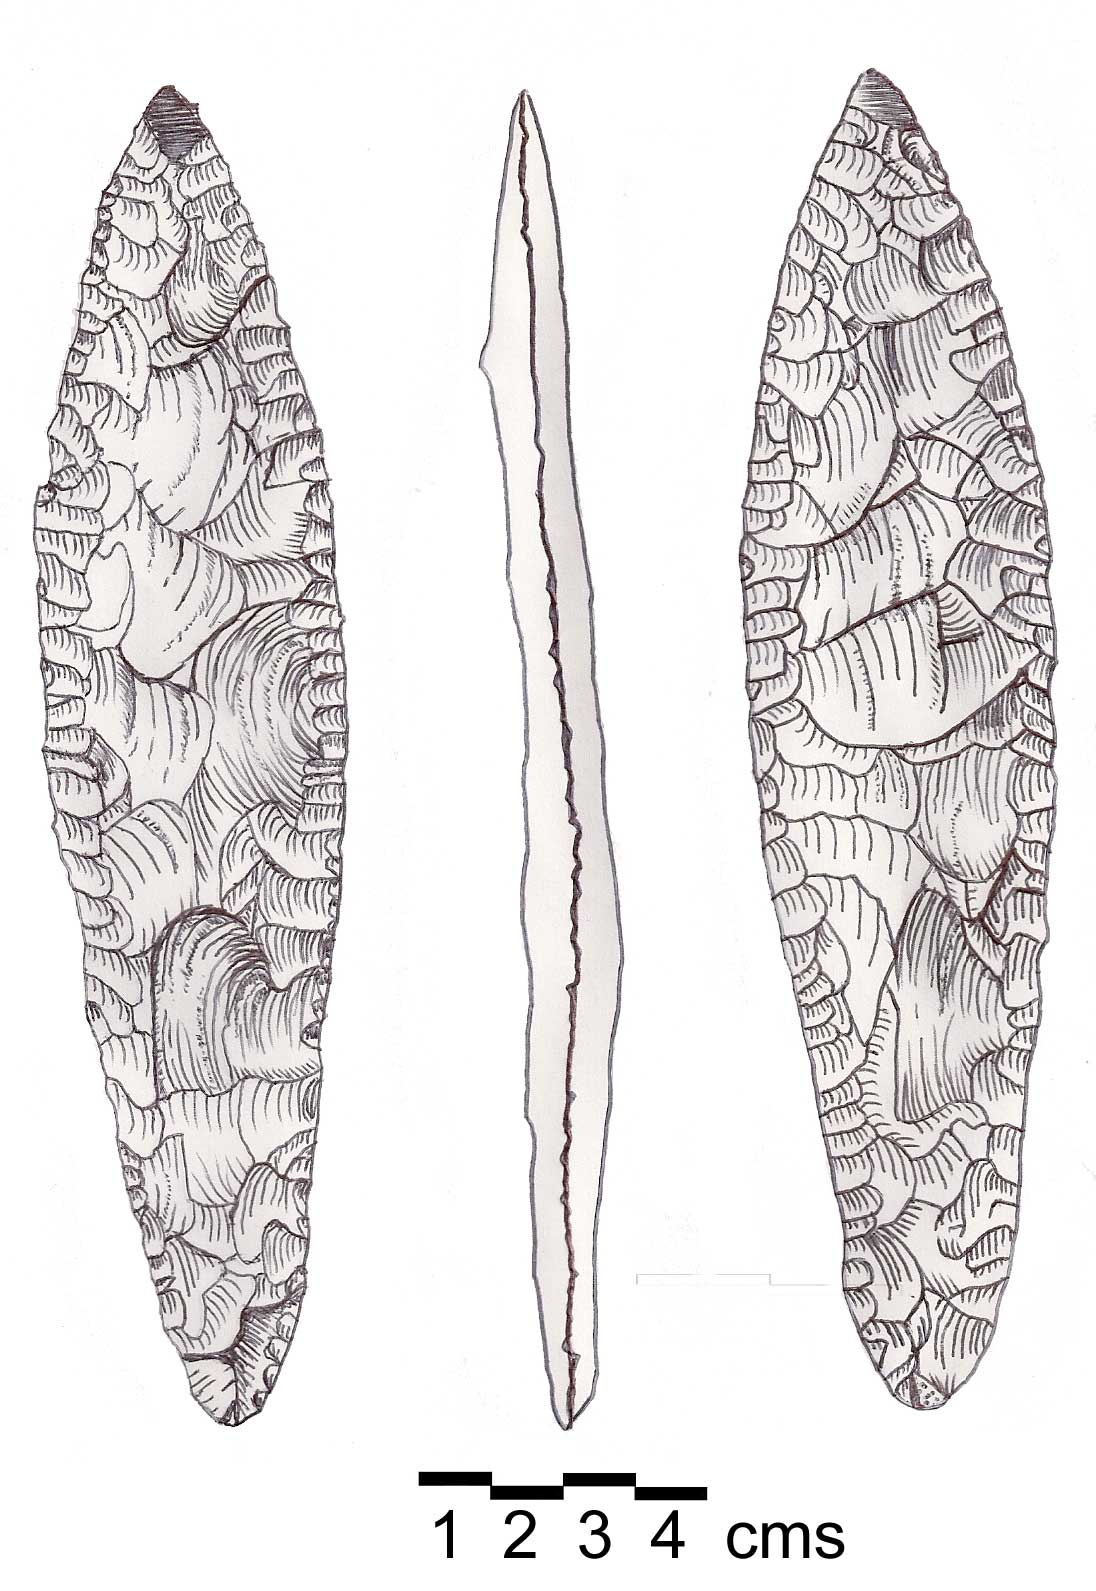 Canaanean Blade. Suggested to be part of a javelin. Fresh grey flint, both sides showing pressure flaking. Somewhat narrower at the base, suggesting a haft. Polished at the extreme point. Found on land of the Lebanese Evangelical School for Girls in the Patriarchate area of Beirut.